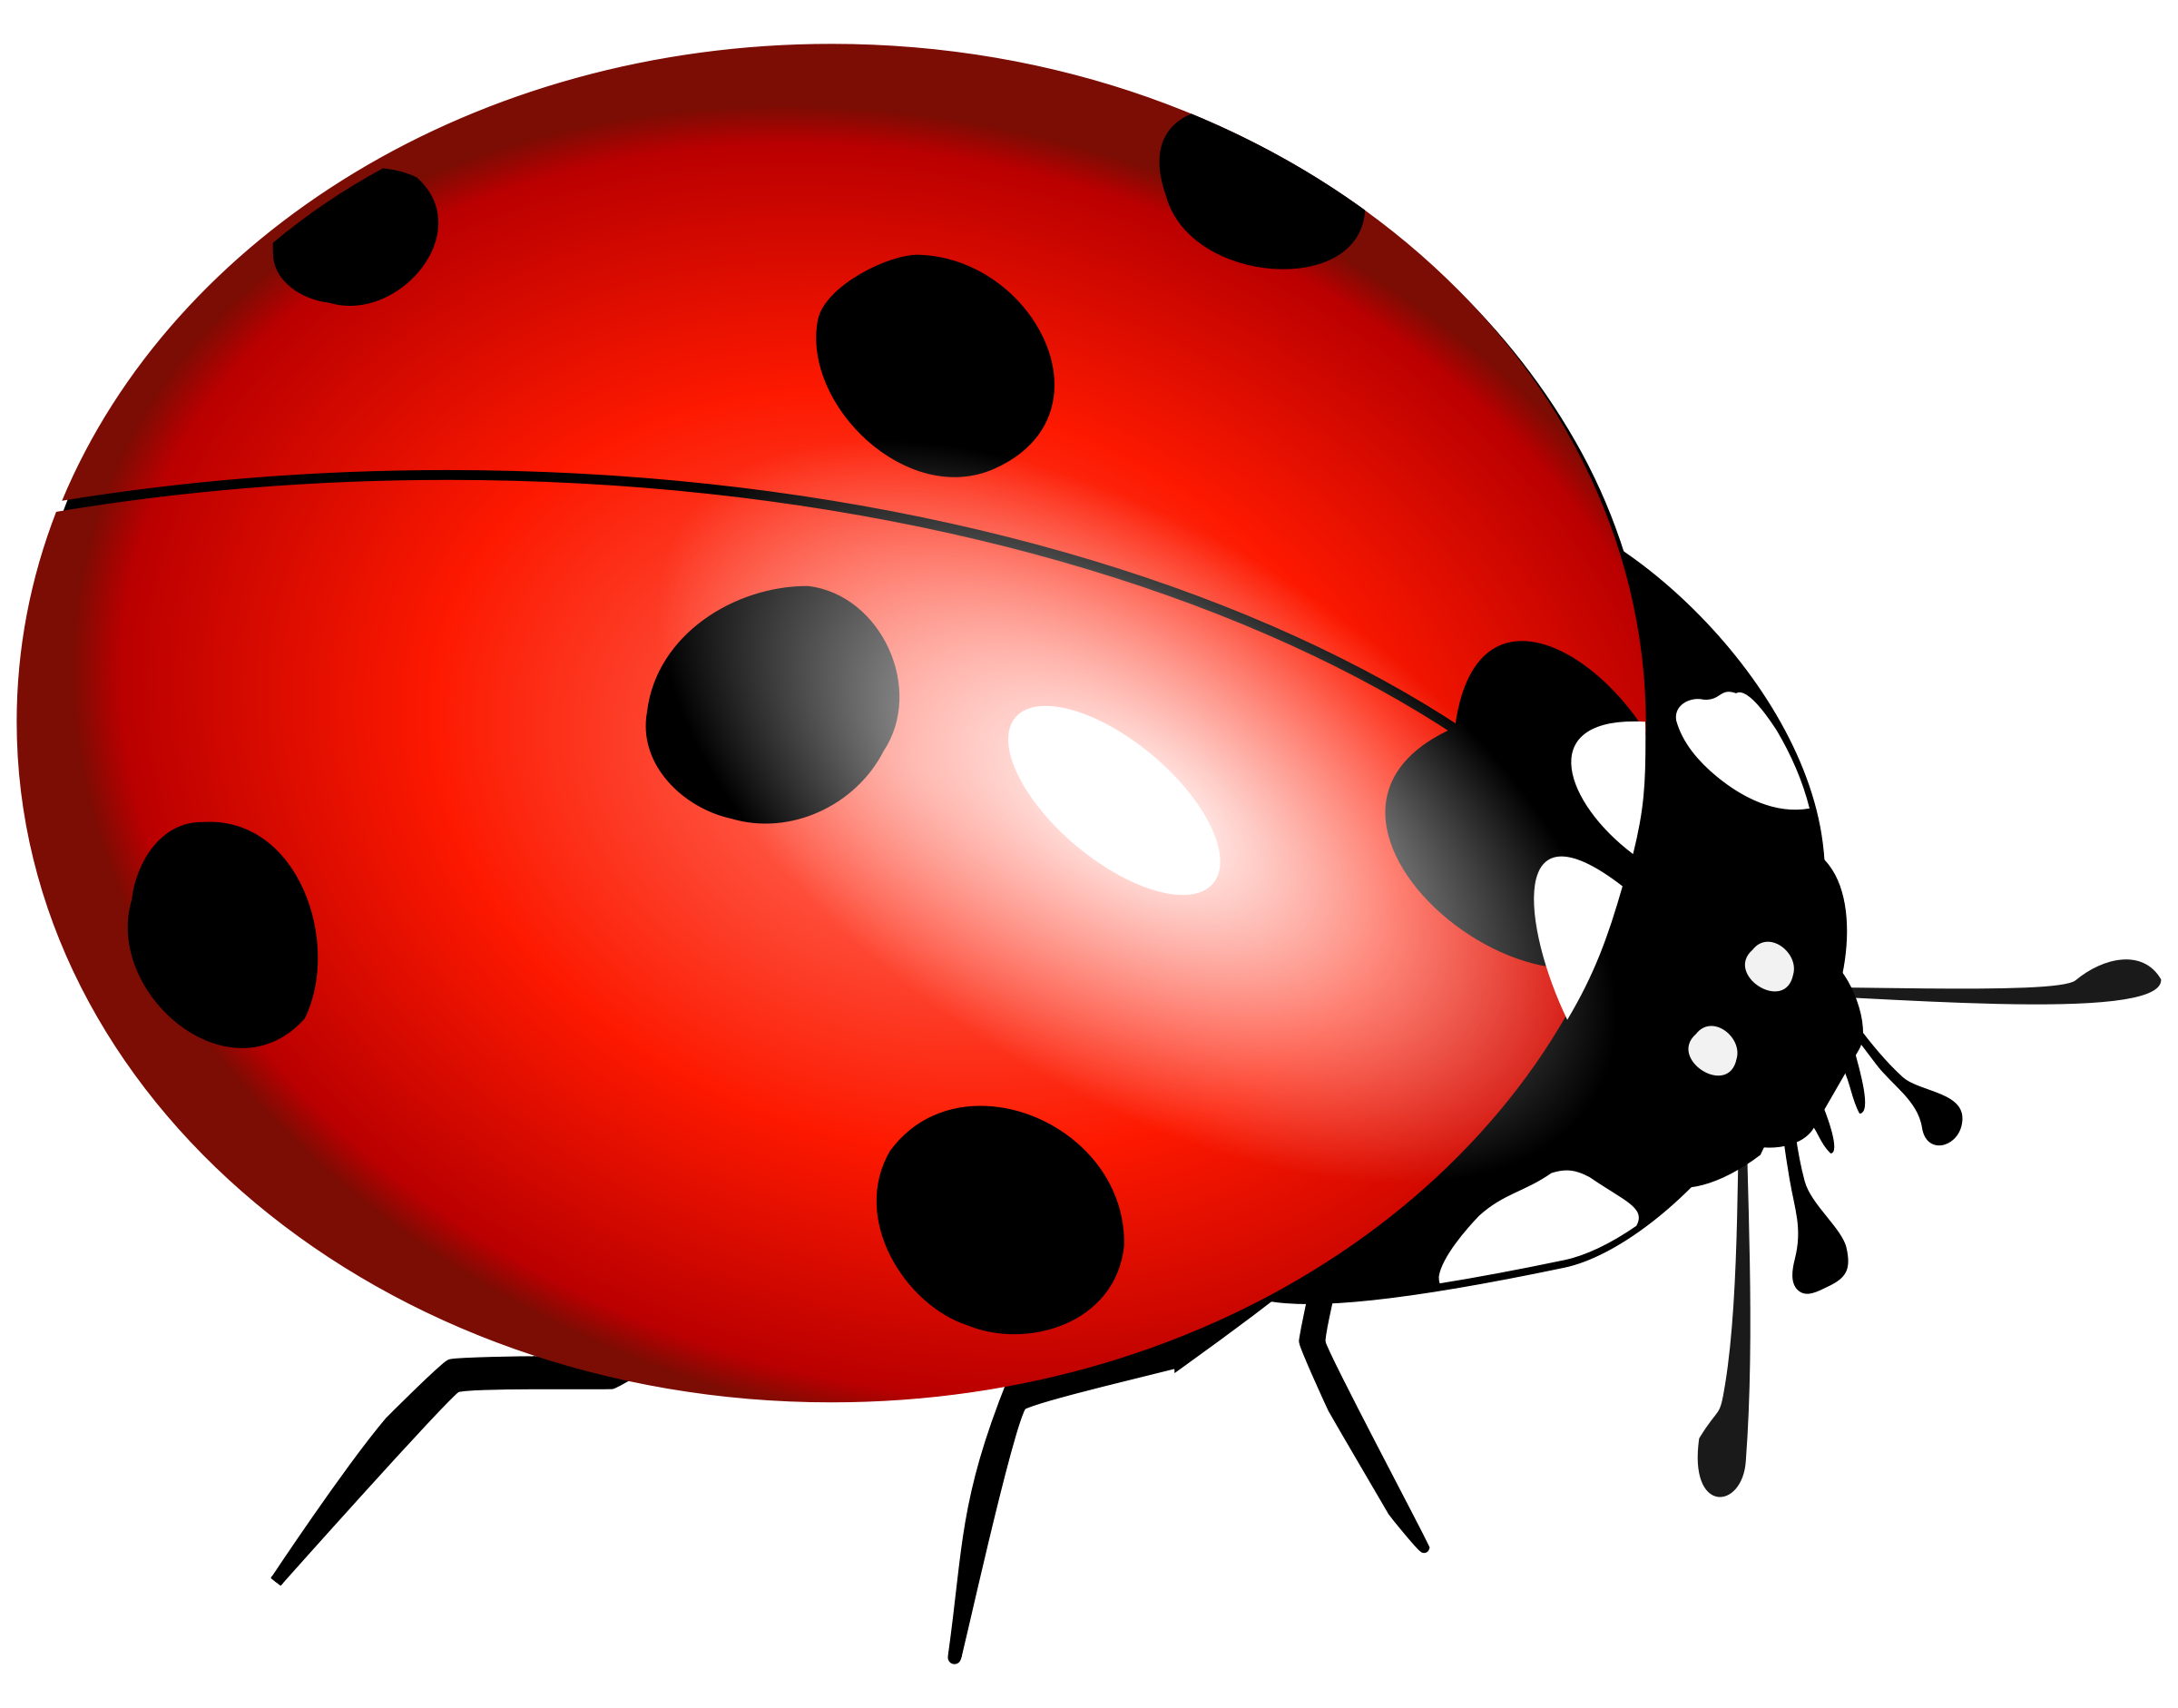 Ladybugs clipart wallpaper. Ladybug flying panda free